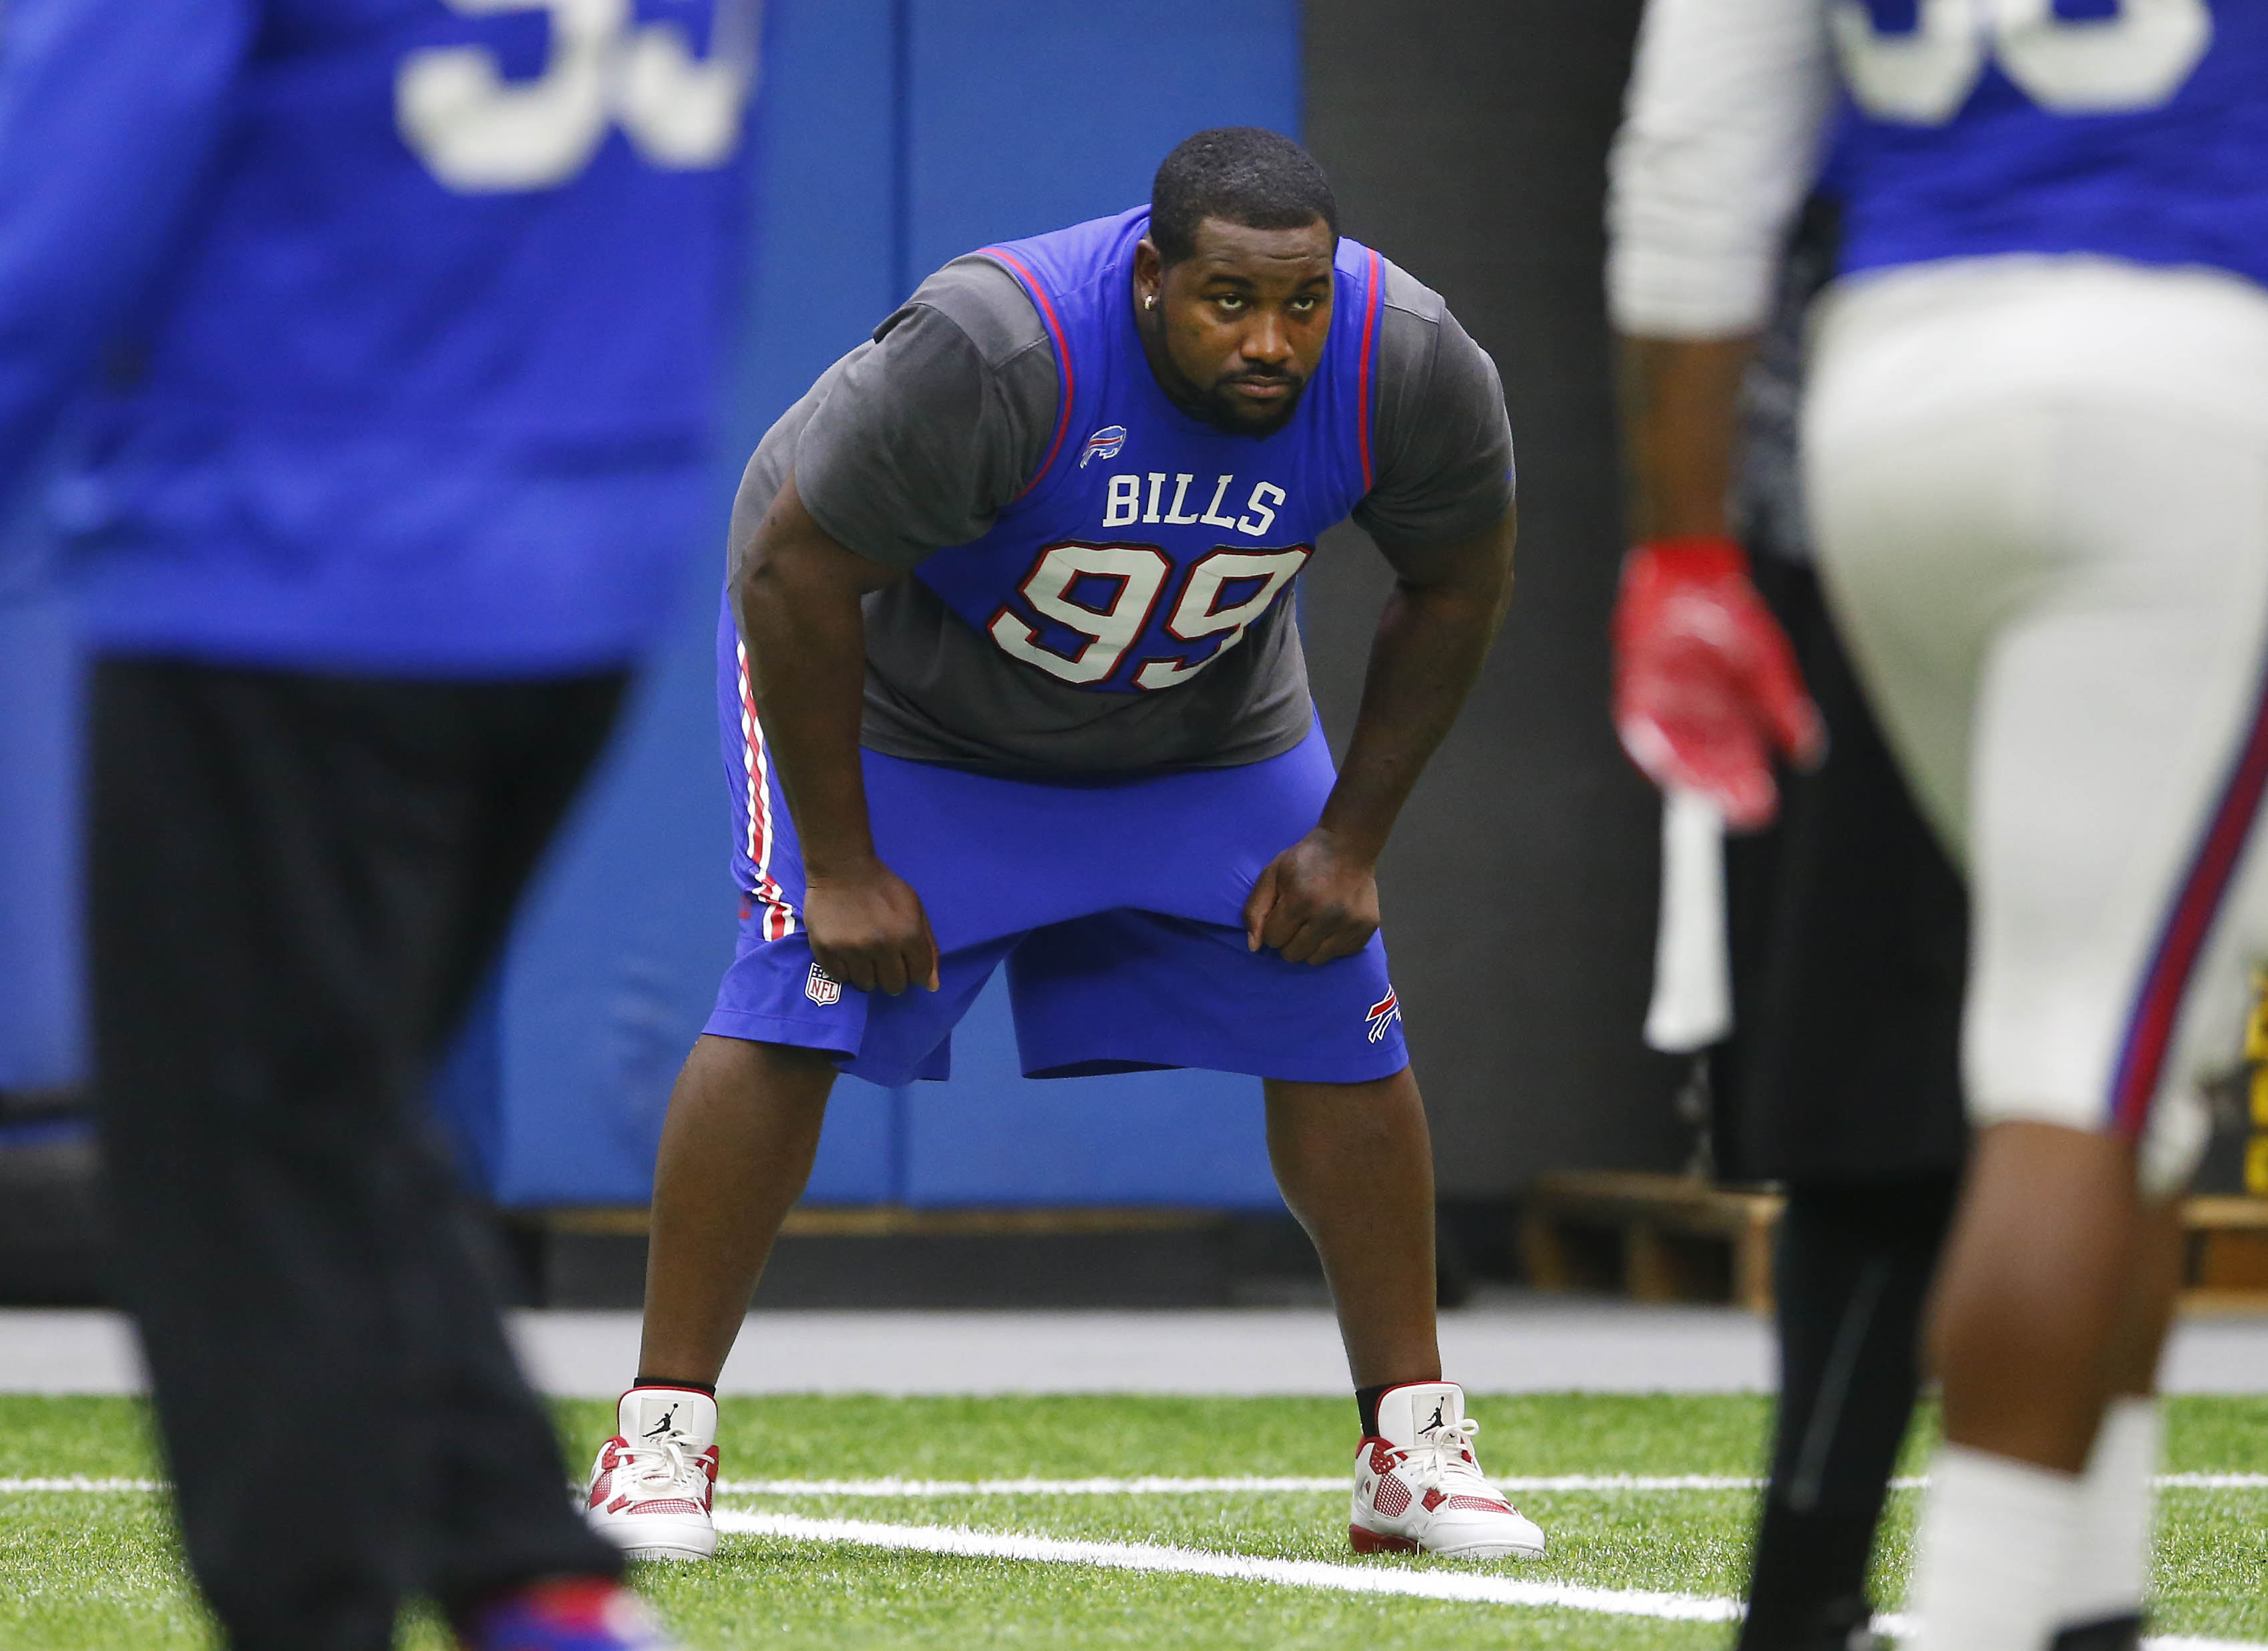 The Bills Marcell Dareus watches practice from the sideline in Orchard Park Thursday, Nov. 3, 2016. (Mark Mulville/Buffalo News)